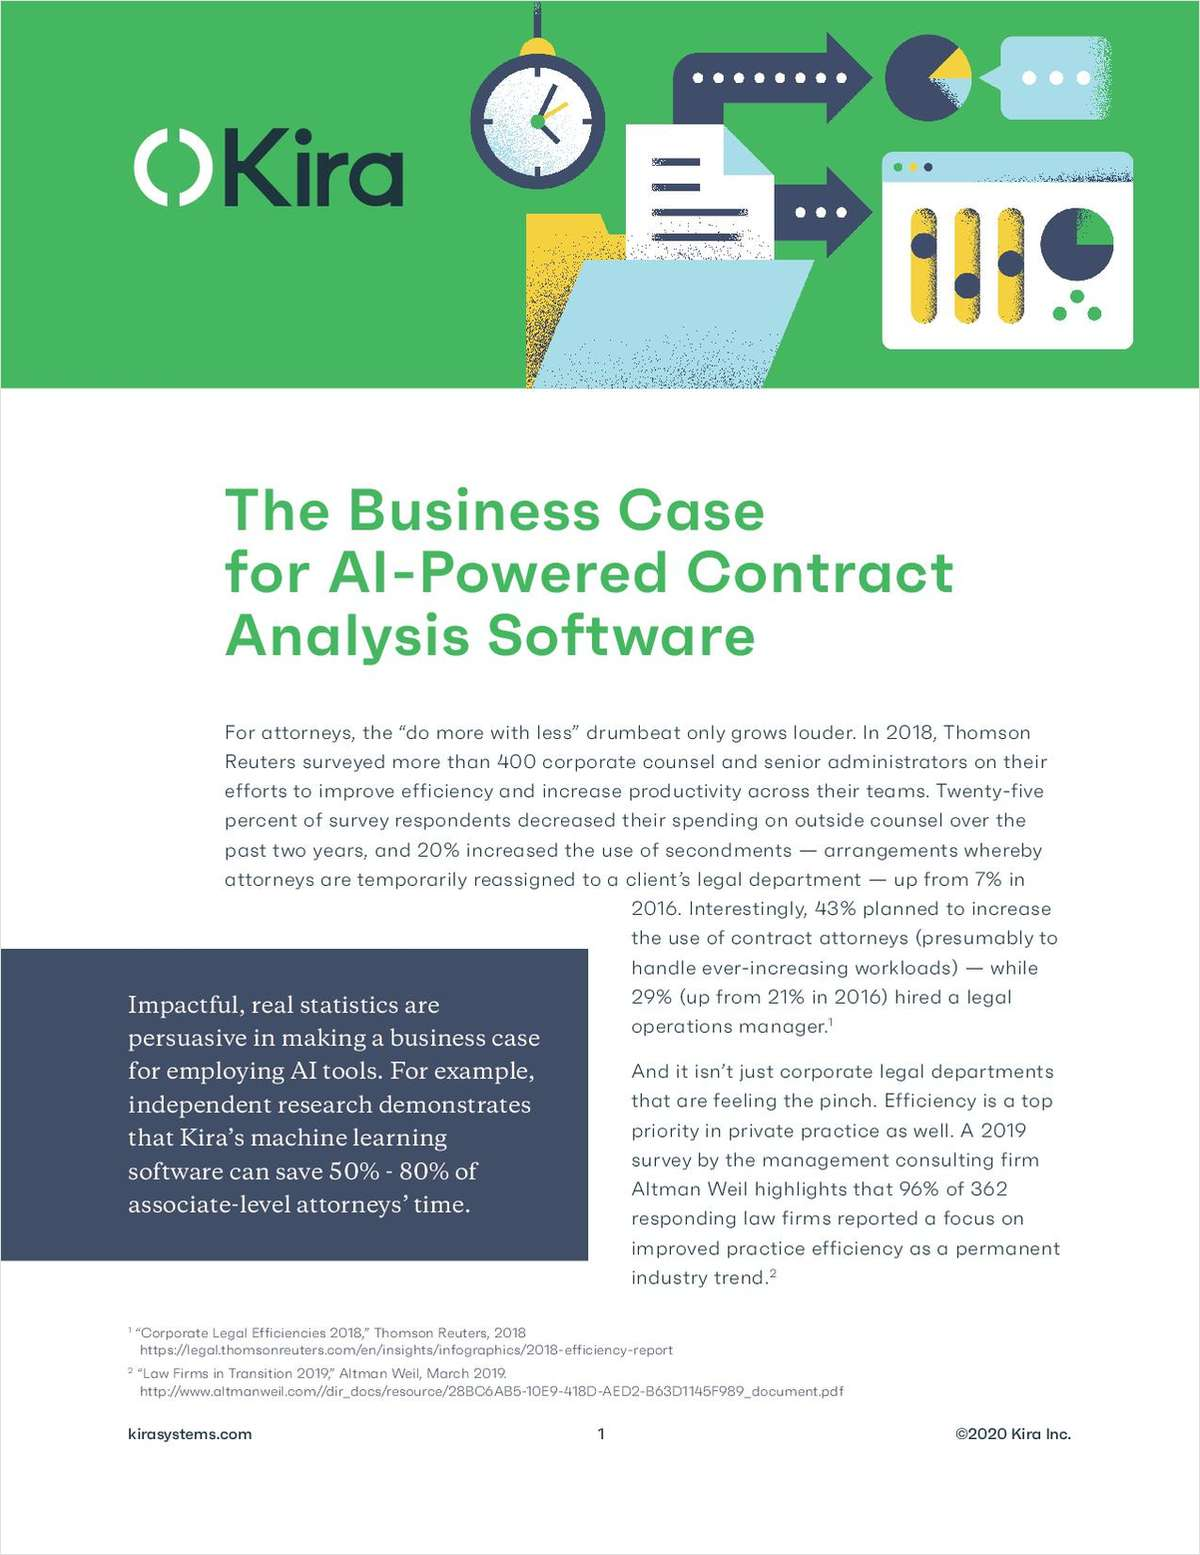 The Business Case for AI-Powered Contract Analysis Software